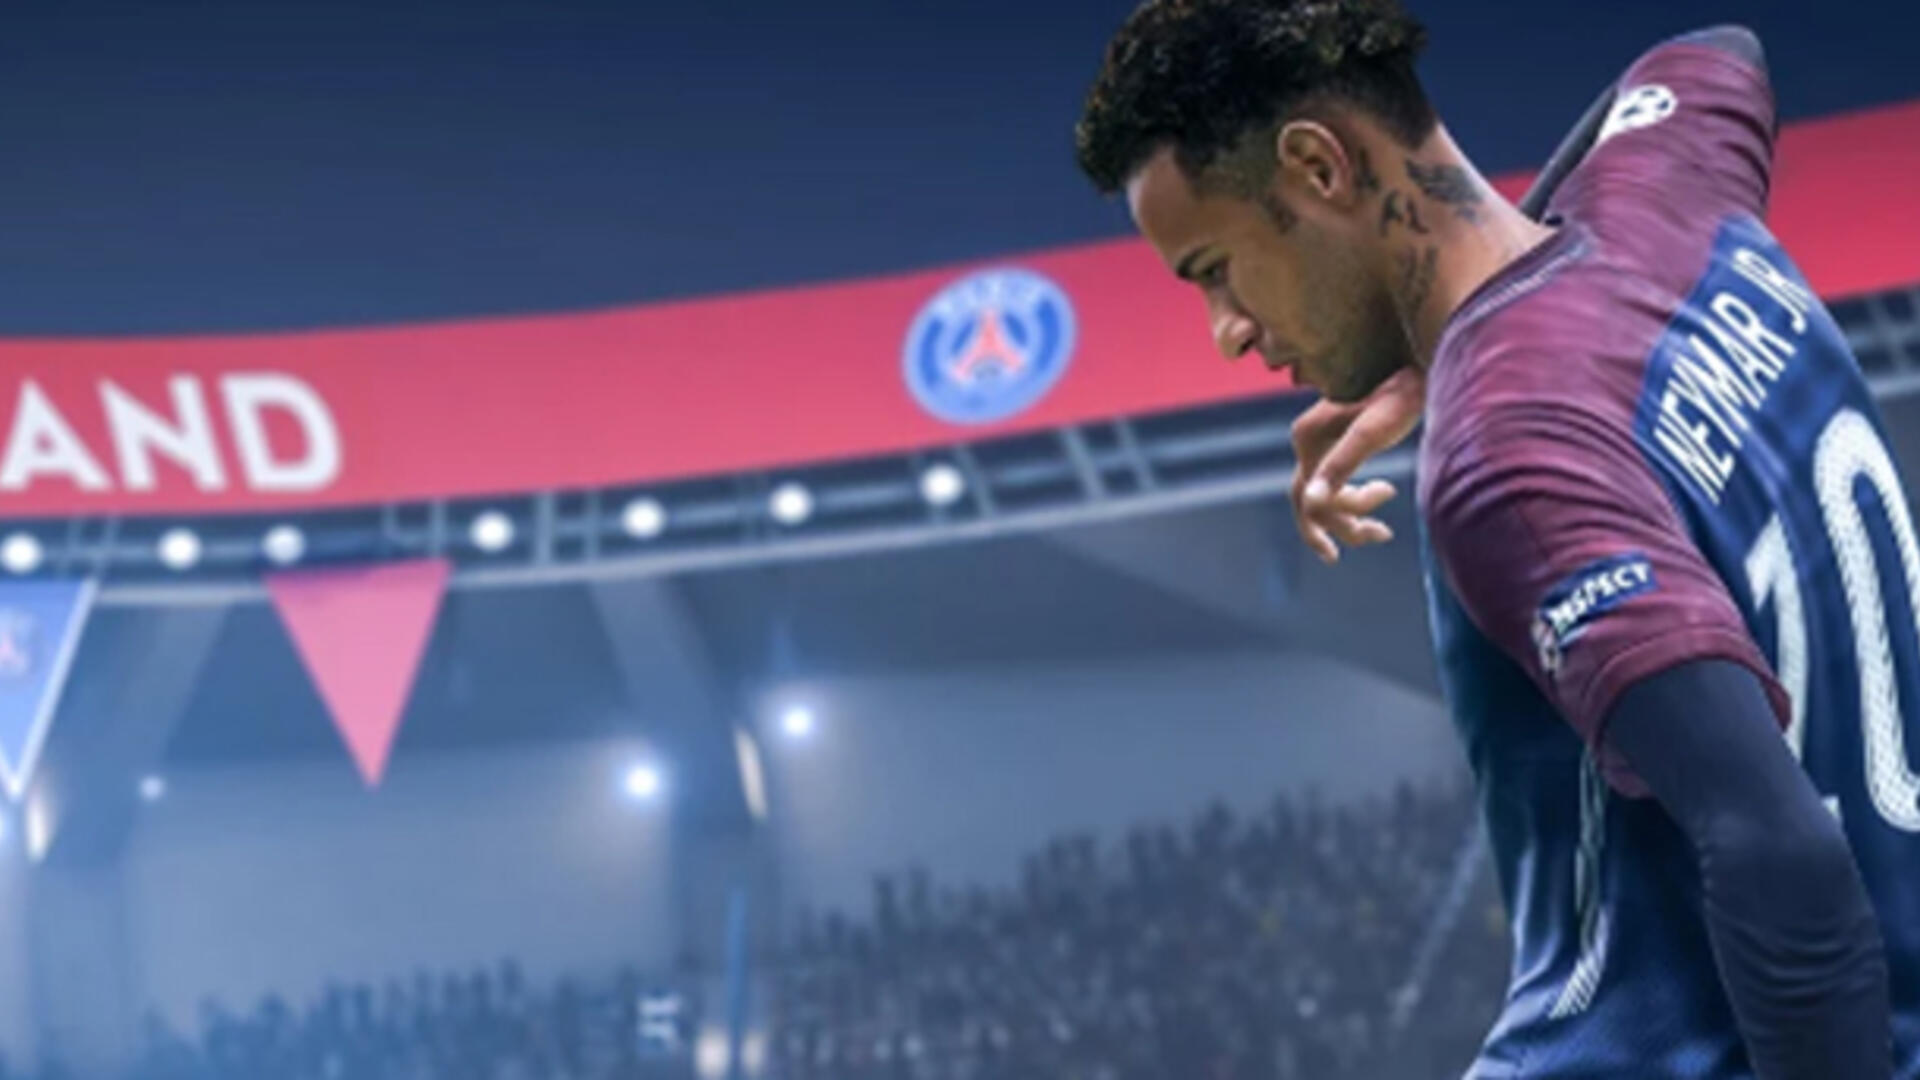 FIFA 19 Has a Bigger Problem Than Frostbite Woes and Bad Patches